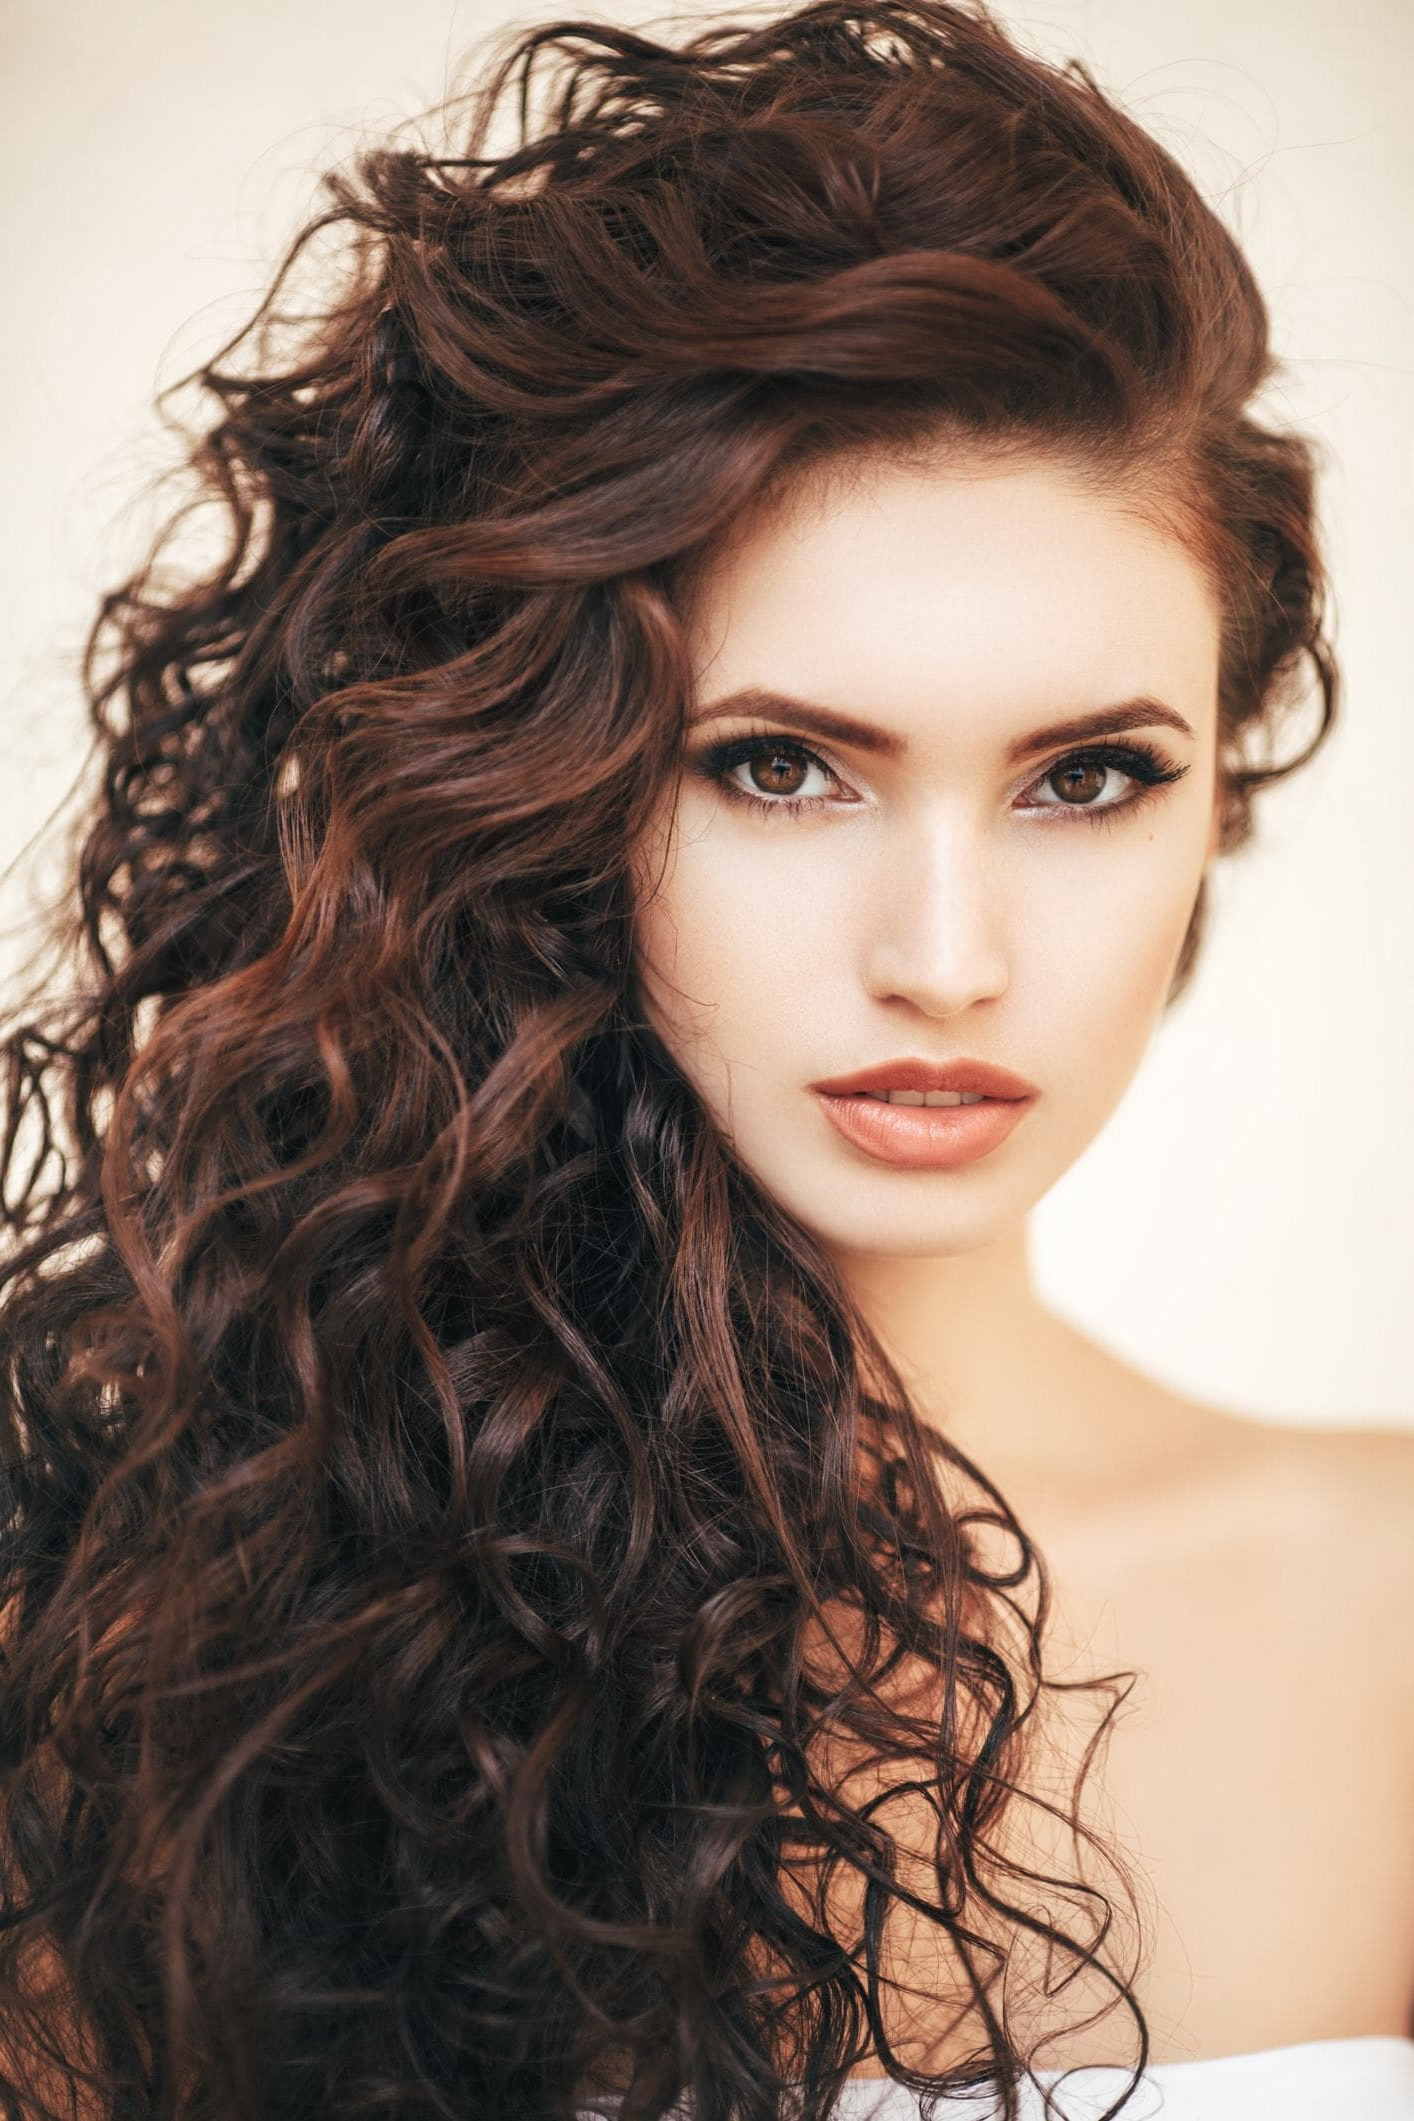 2018 Messy Loose Curls Long Hairstyles With Voluminous Bangs For Curly Hairstyles For Long Hair: 19 Kinds Of Curls To Consider (View 2 of 20)